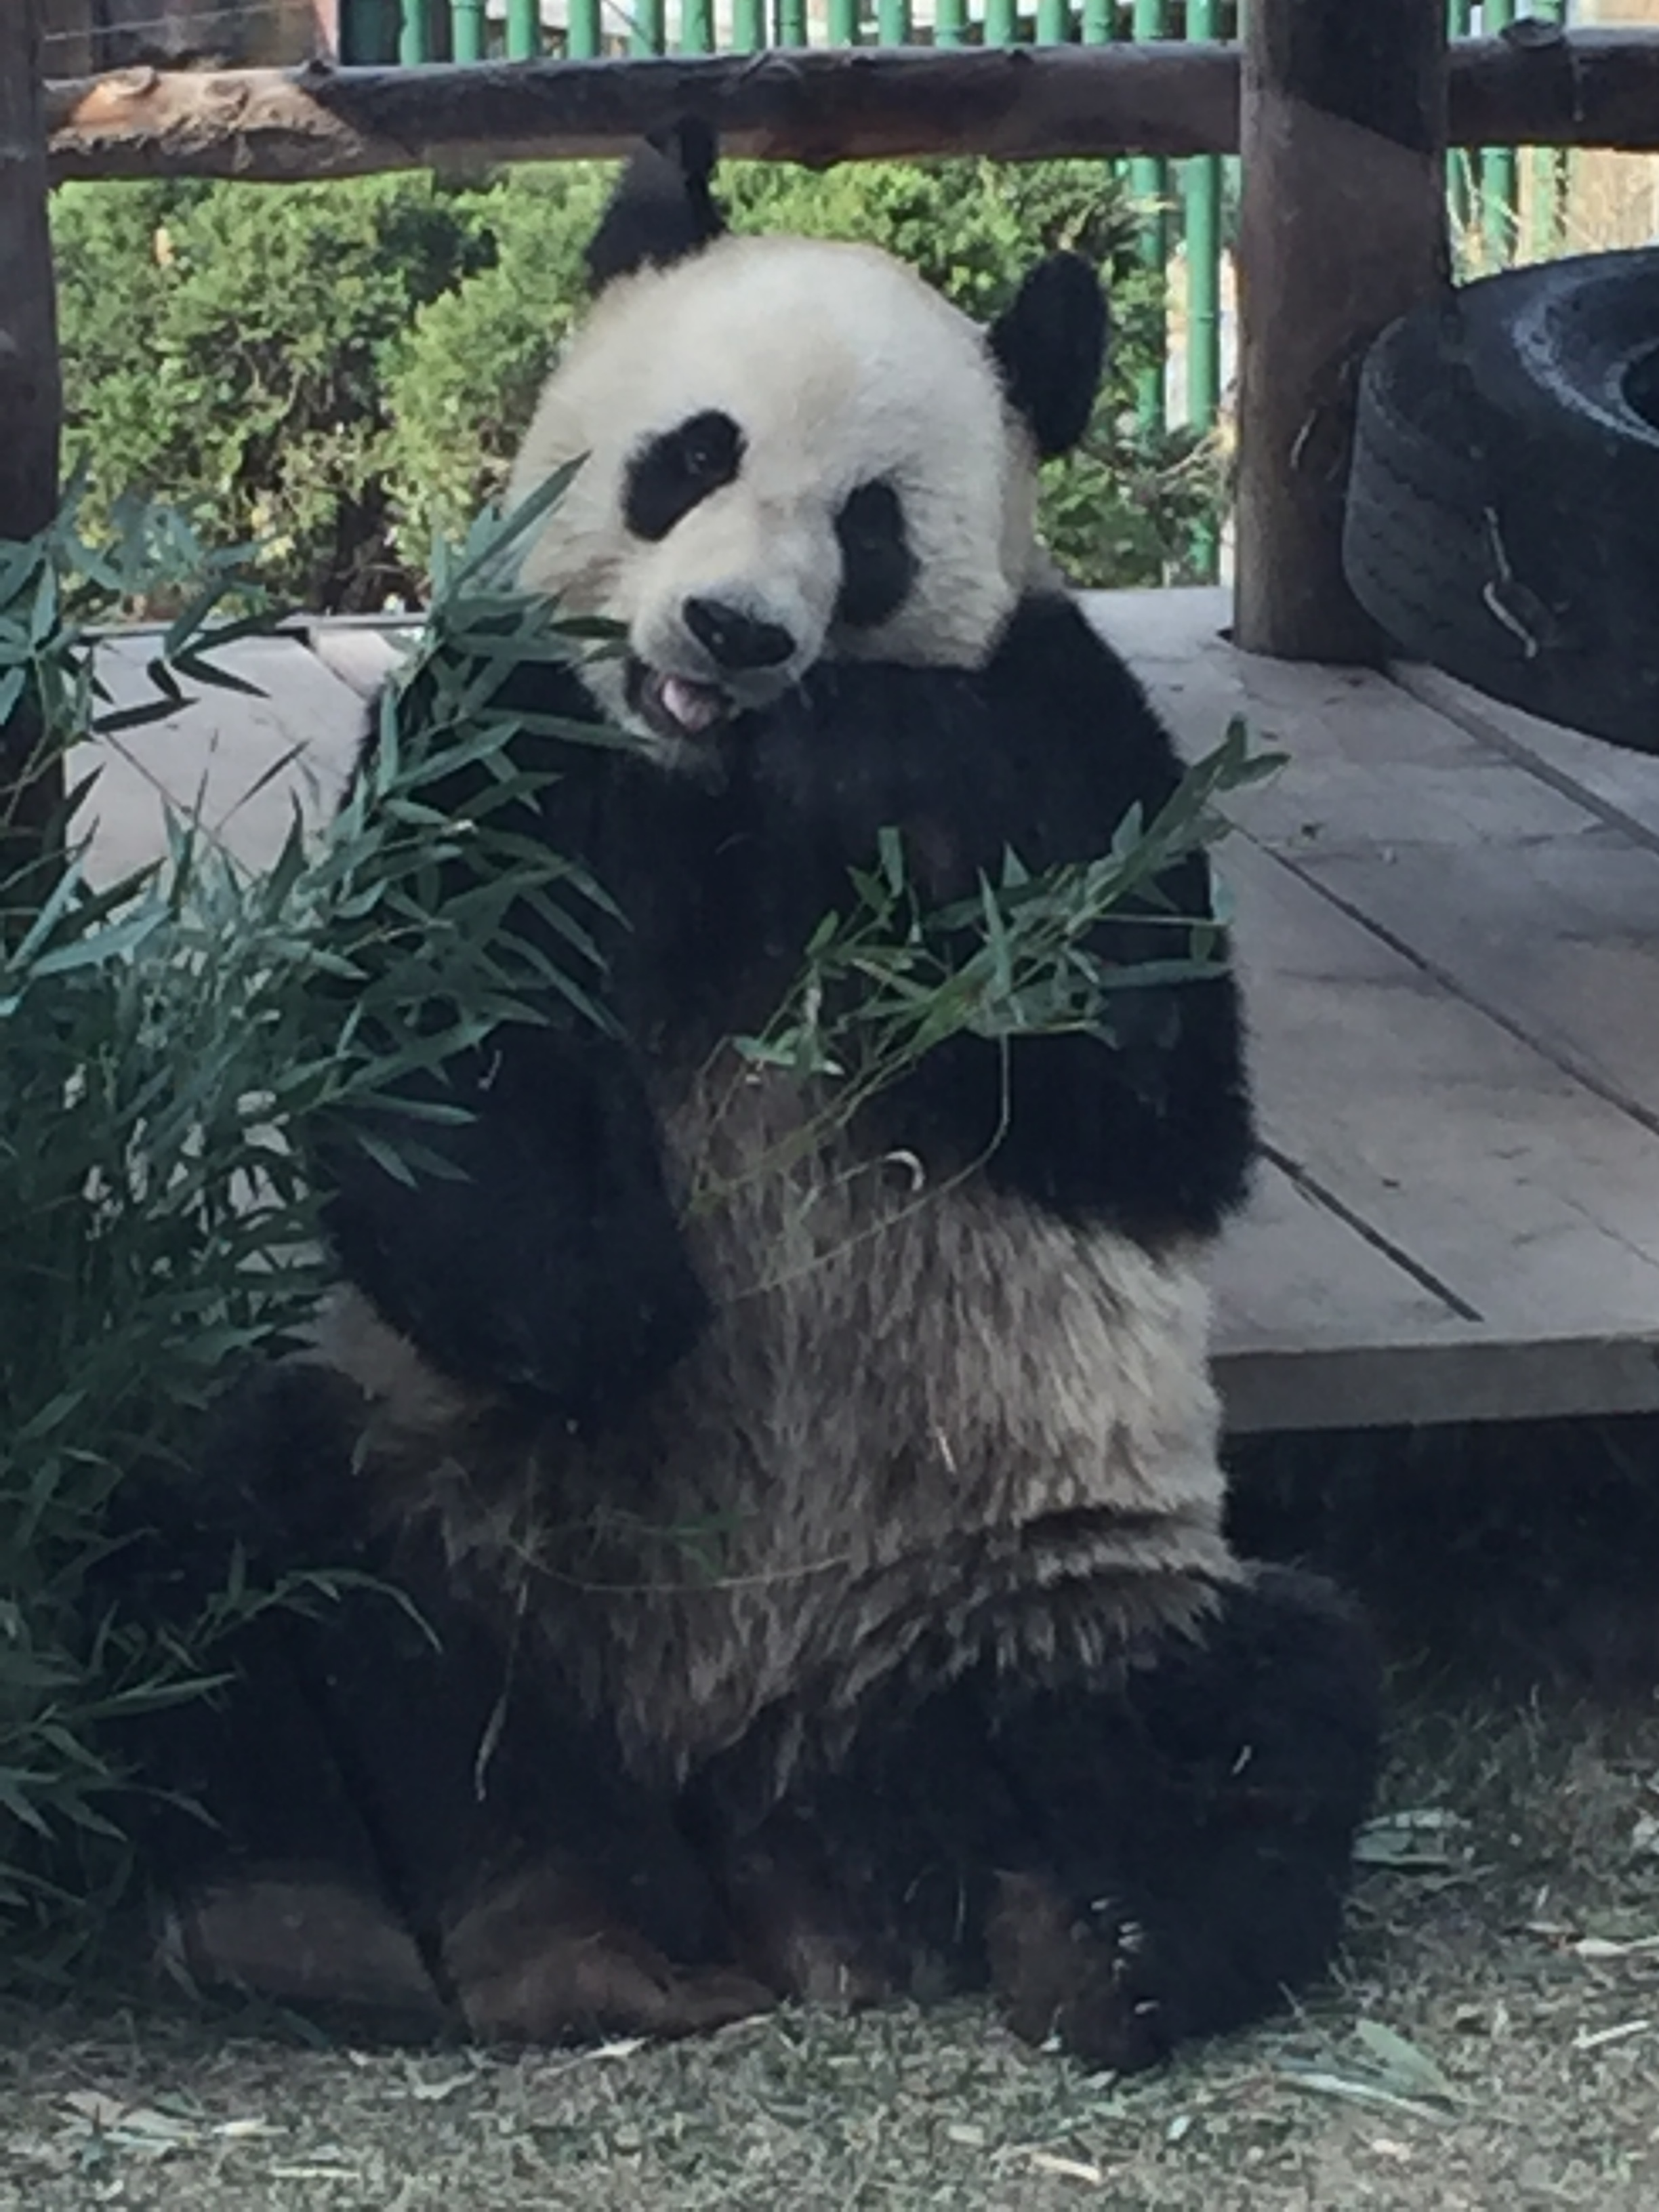 But not as much as bamboo.